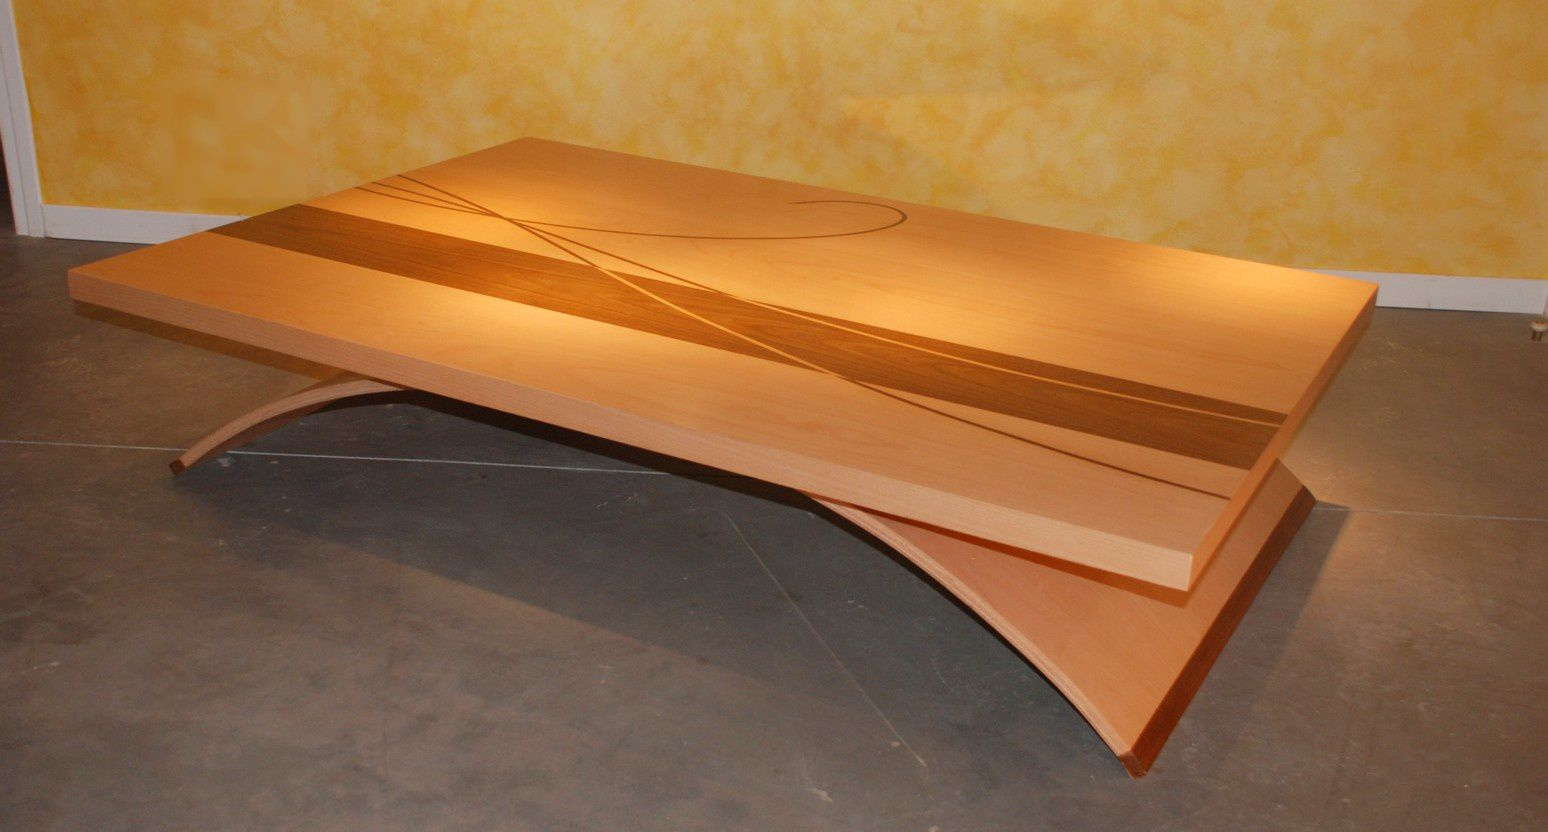 Table basse transformable table haute maison design for Table basse design